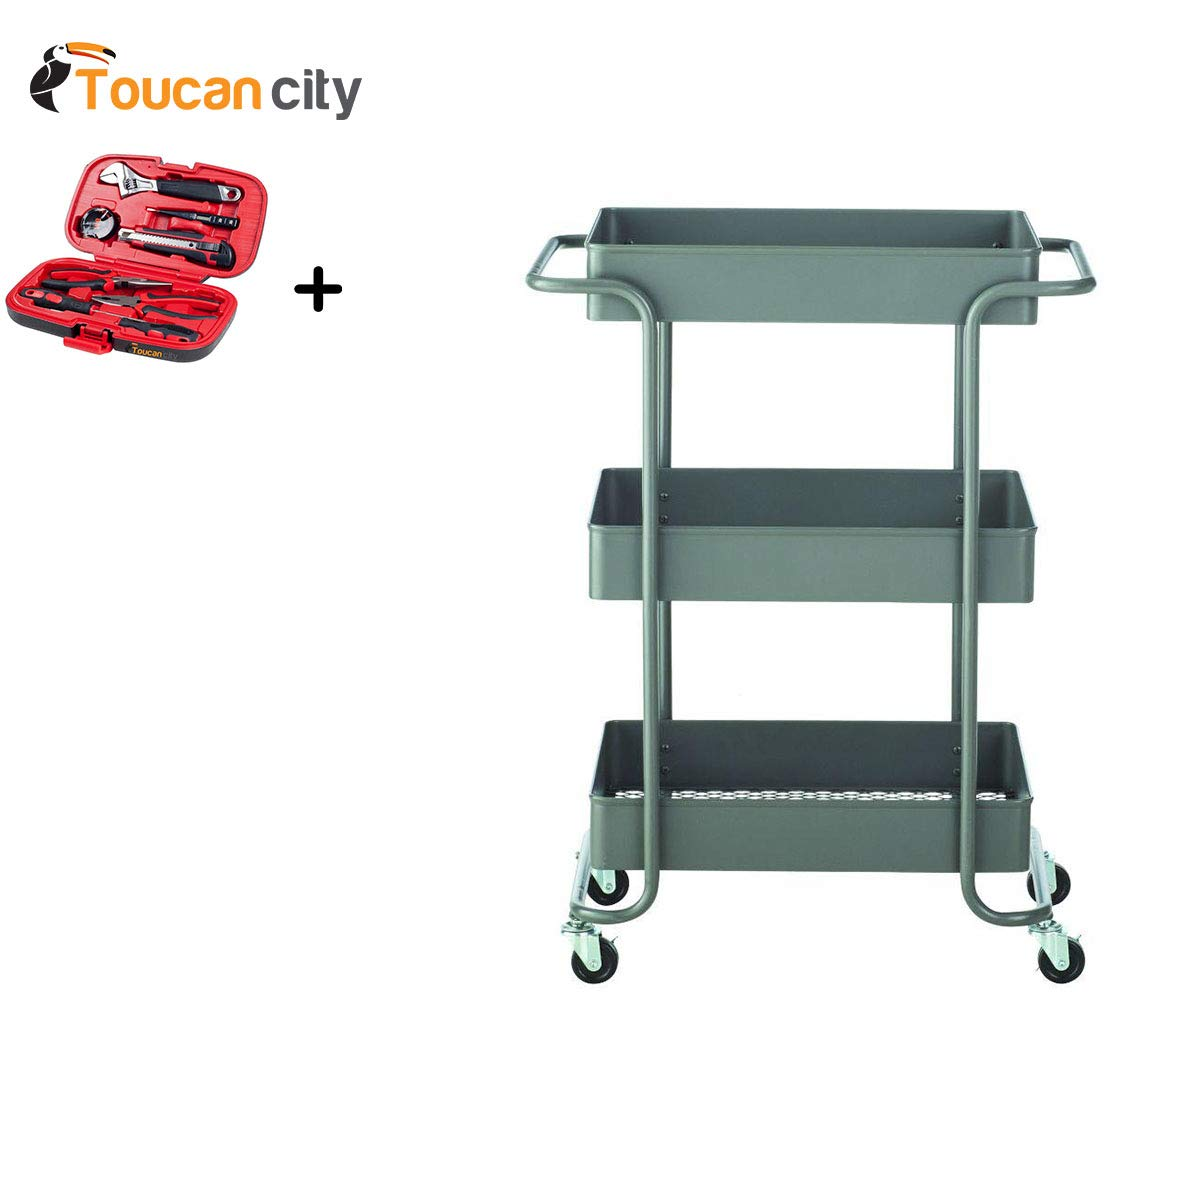 Toucan City Tool Kit (9-Piece) and Home Decorators Collection Steel Open Cart in Grey 9201810270